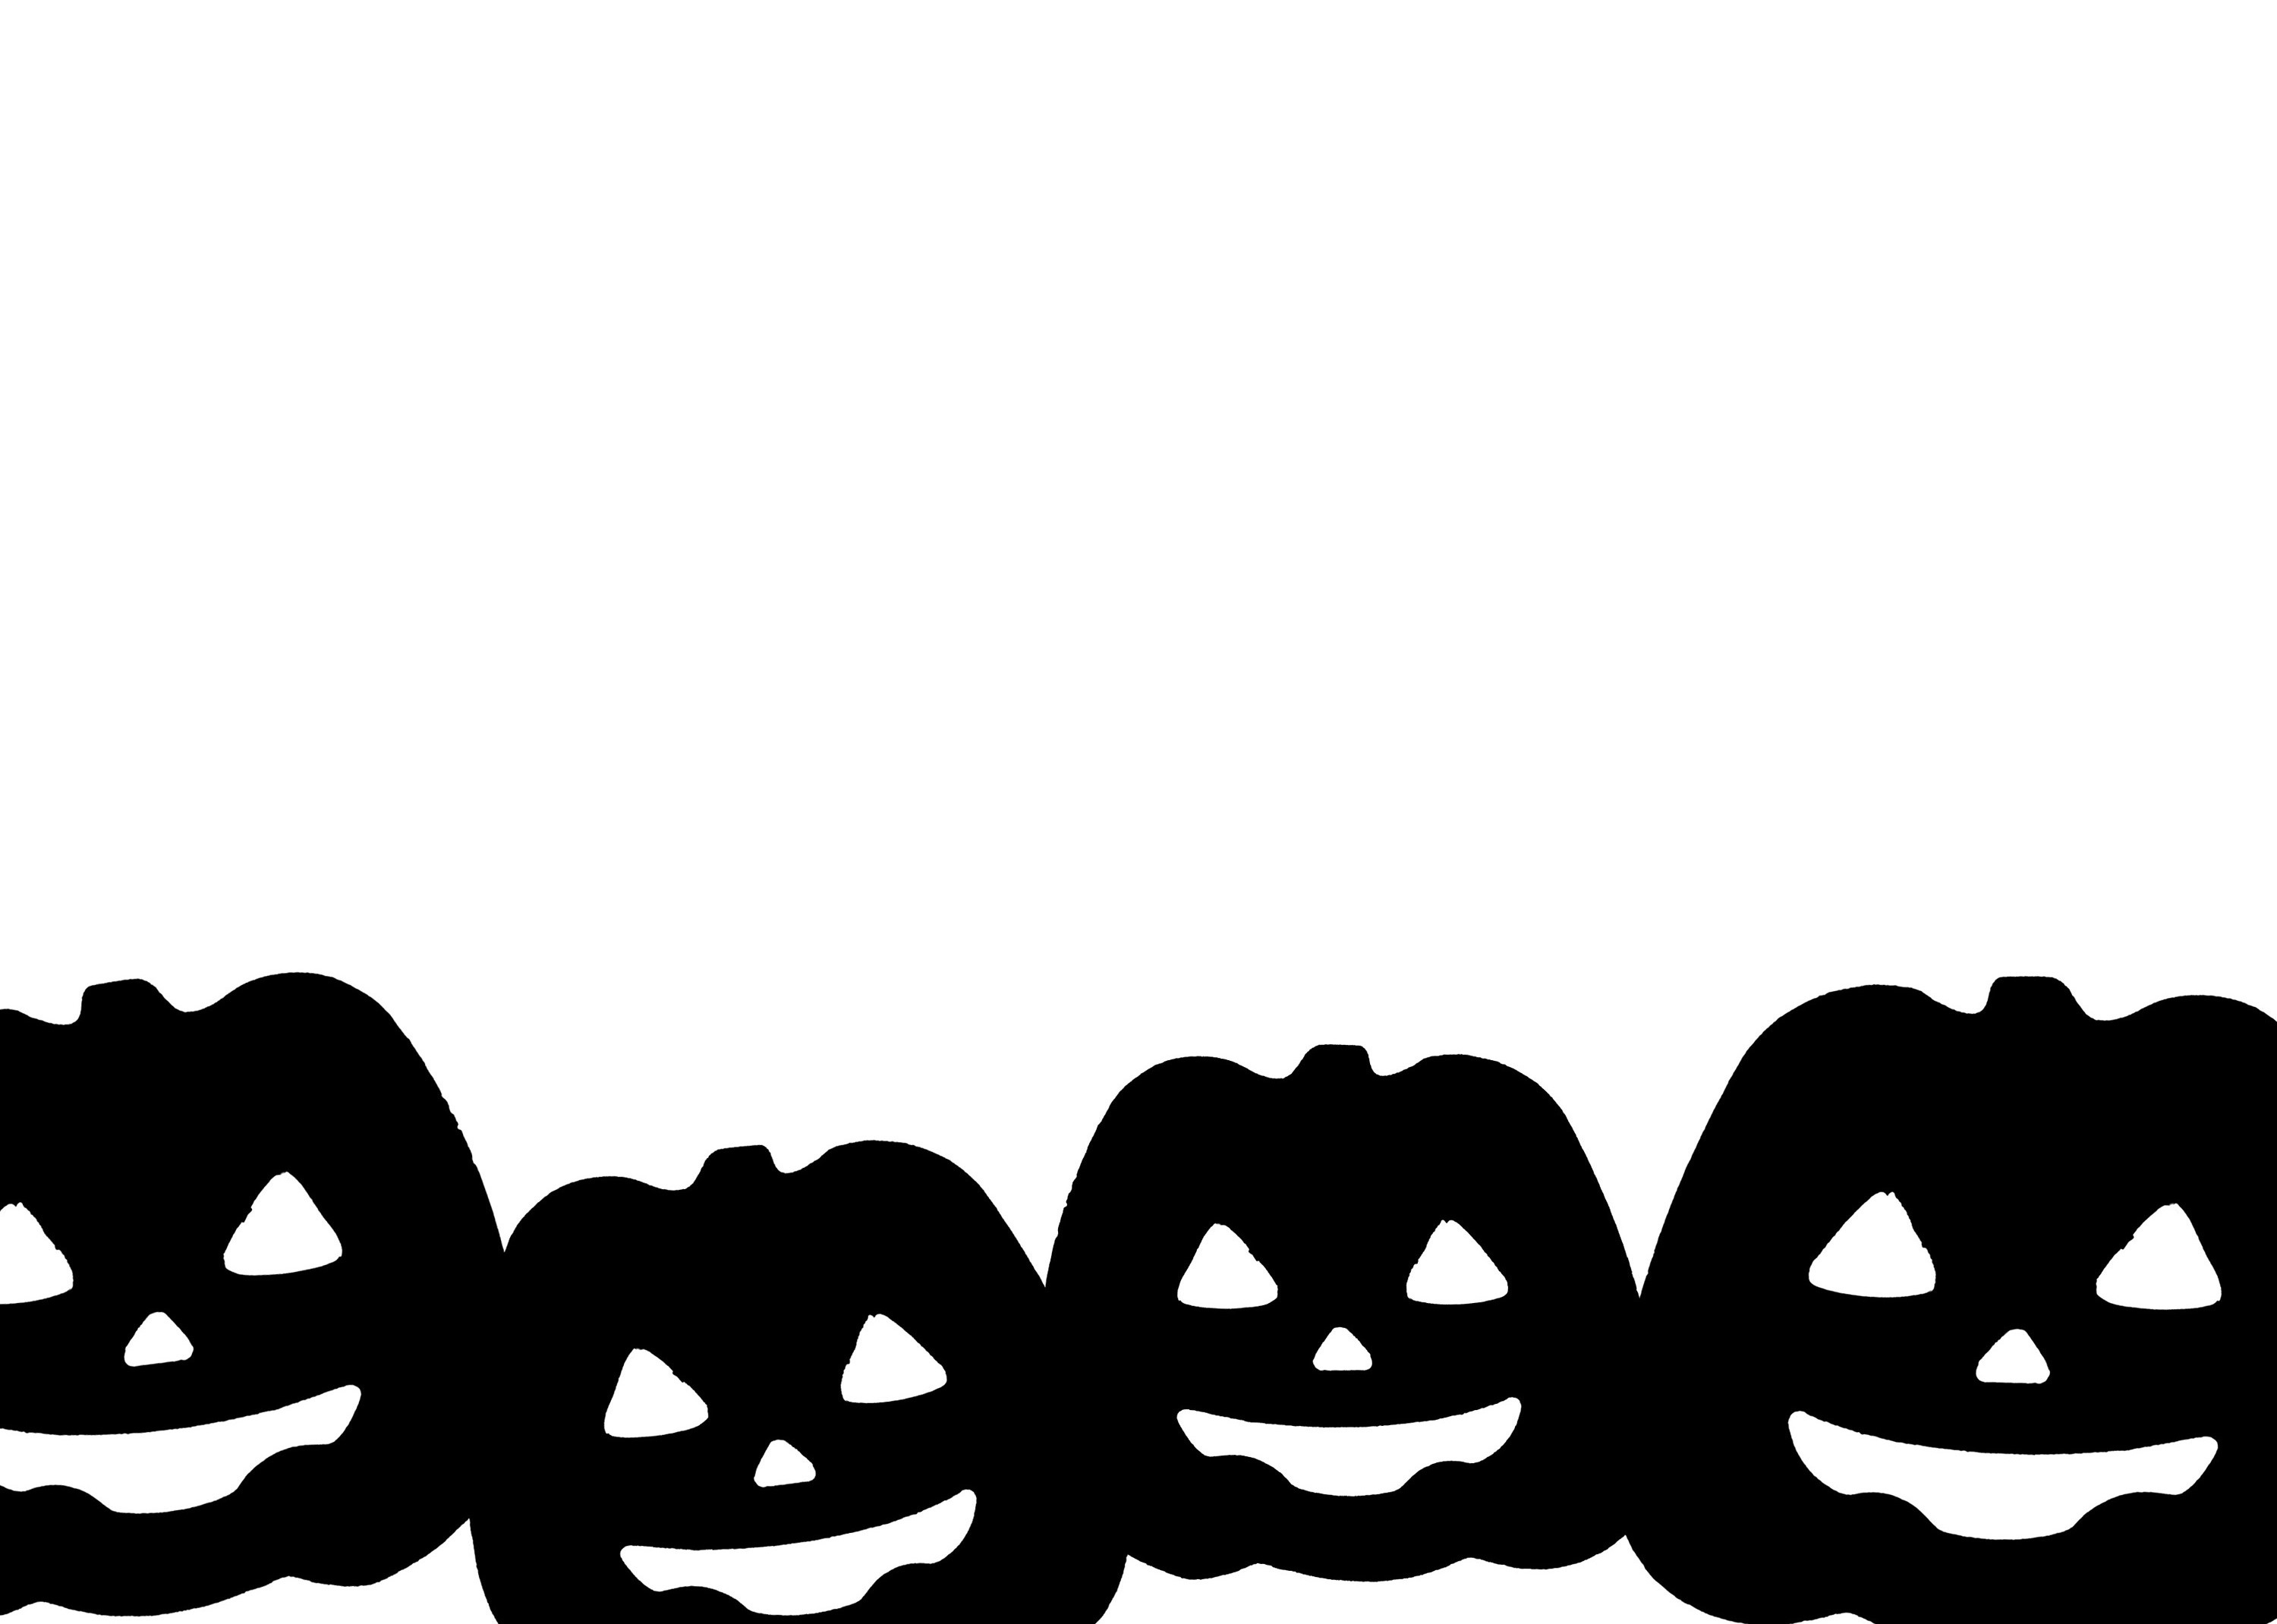 3000x2140 Image Of Jack O Lantern Border Creepyhalloweenimages